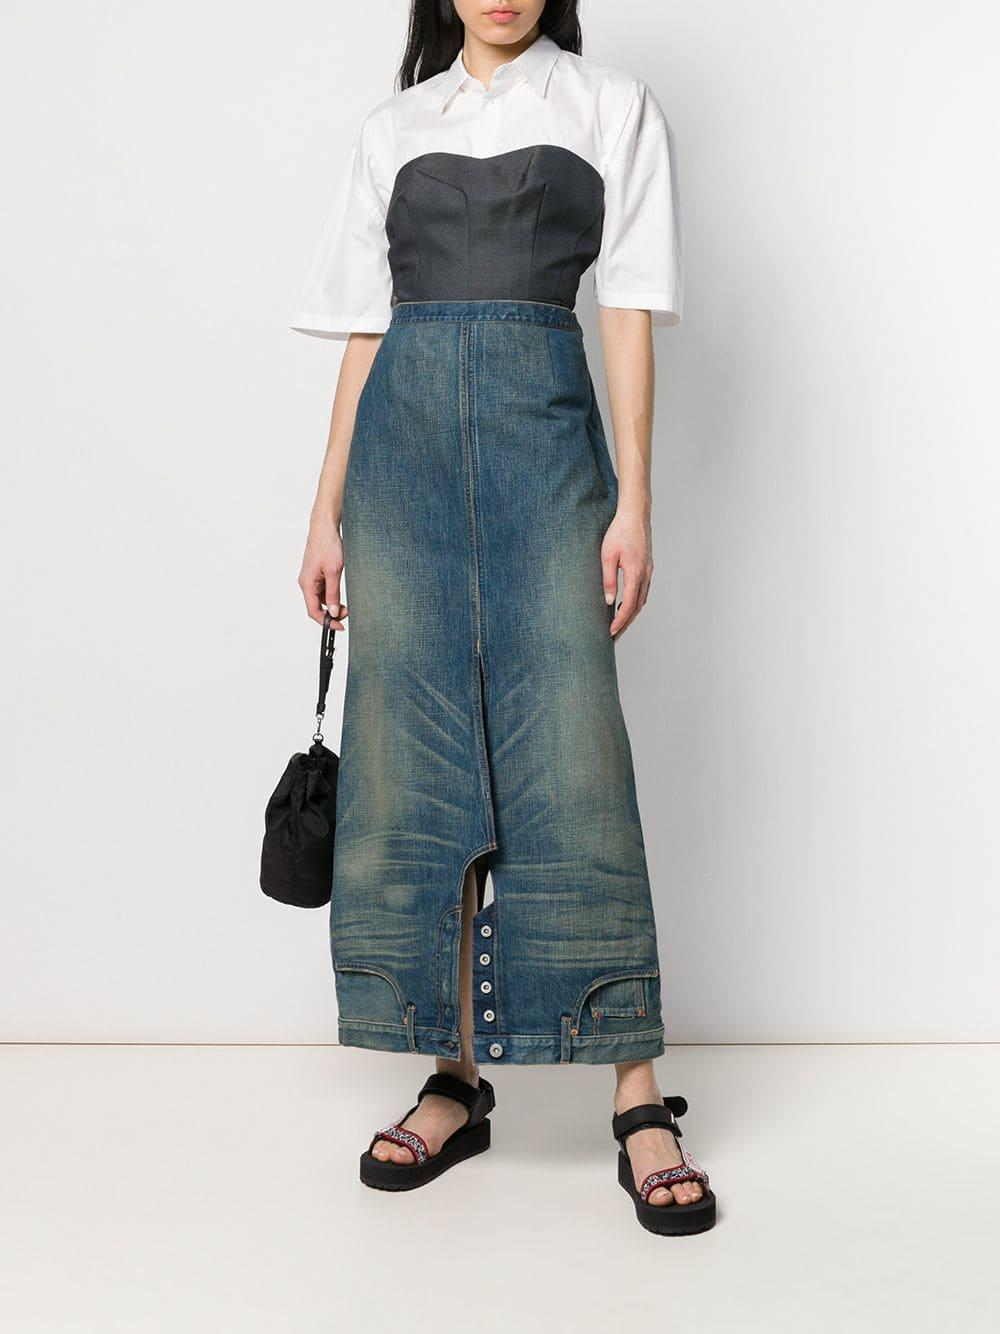 a717850df8 Lyst - Junya Watanabe Denim Upside Down Skirt in Blue